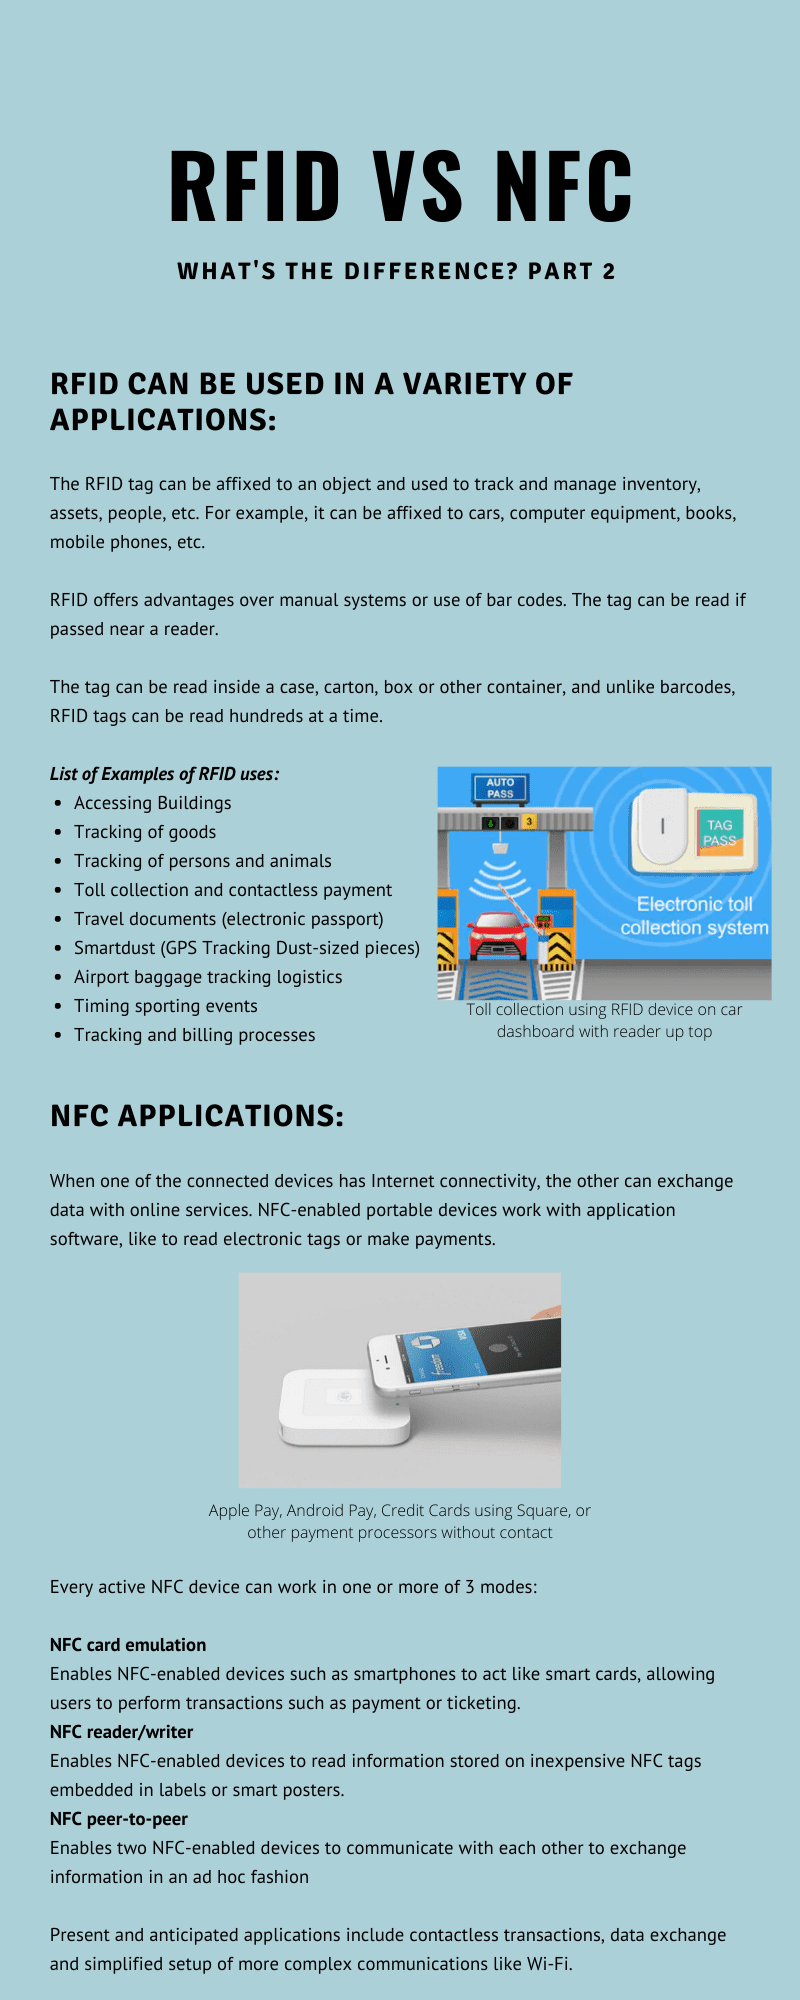 rfid vs nfc info graphically explained